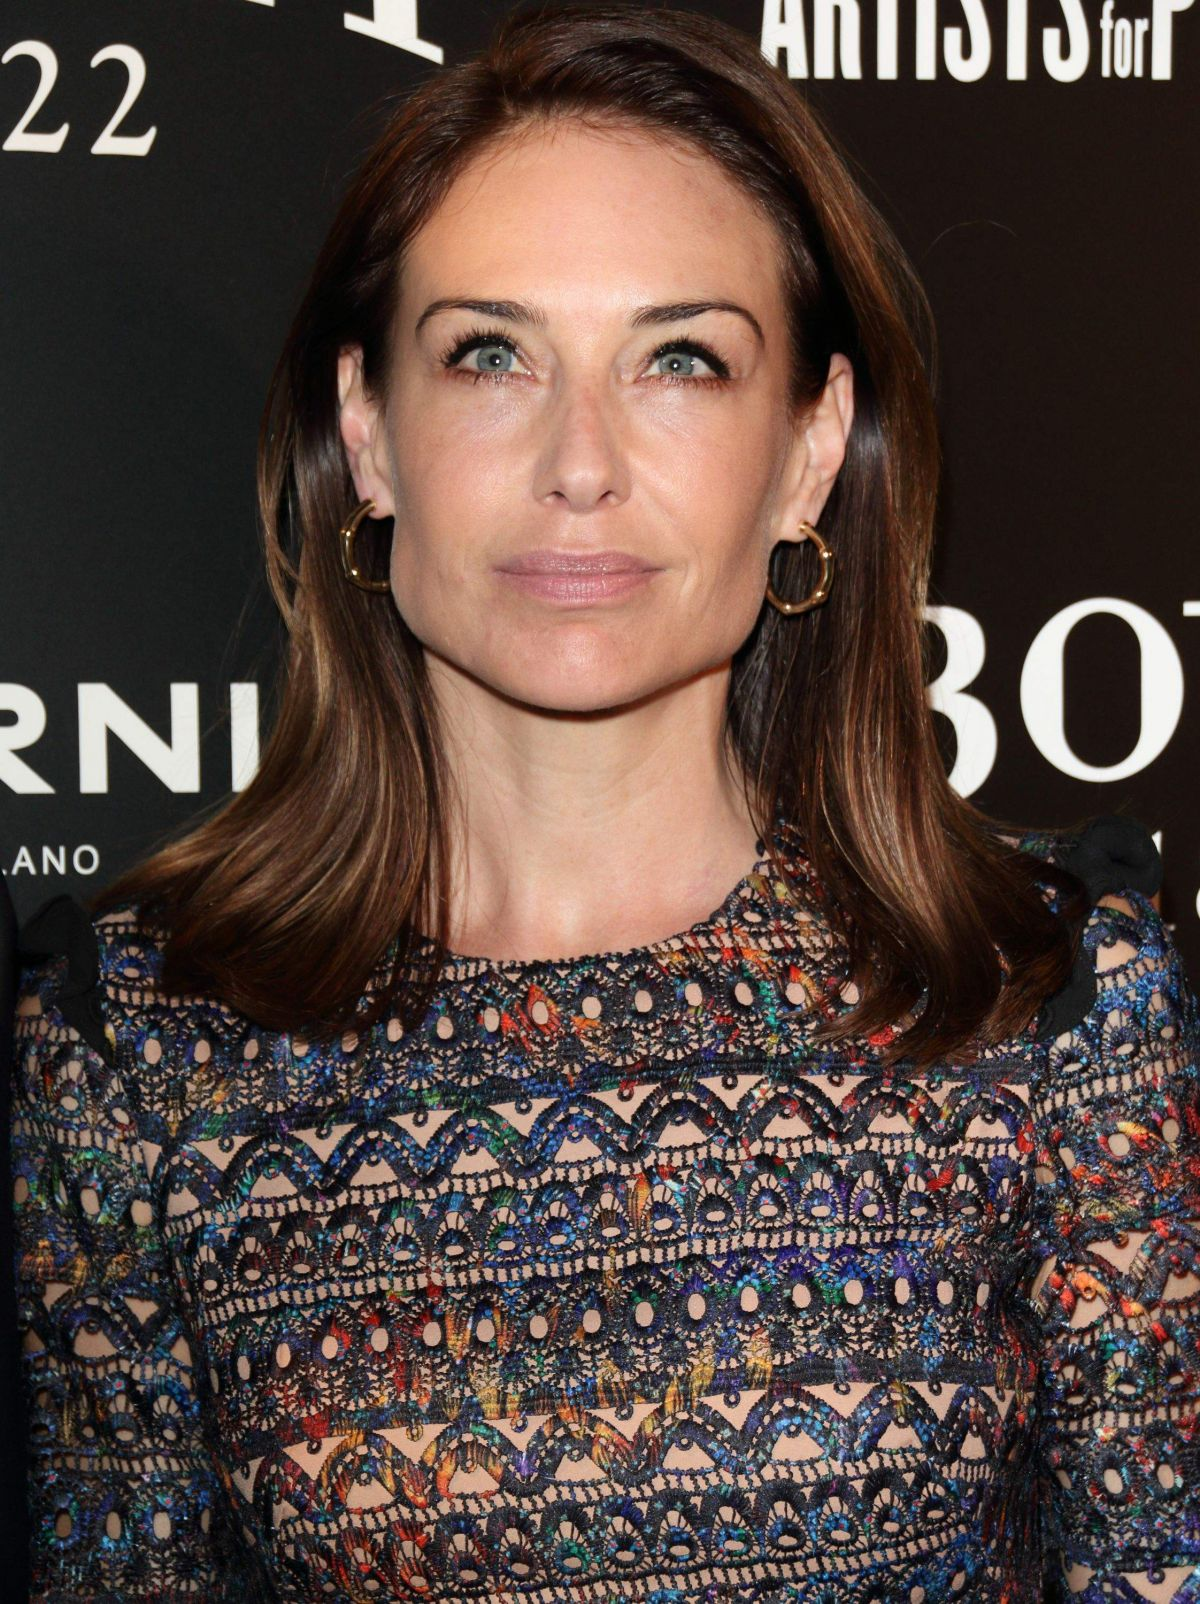 CLAIRE FORLANI at Brilliant is Beautiful Gala in London 10/09/2016